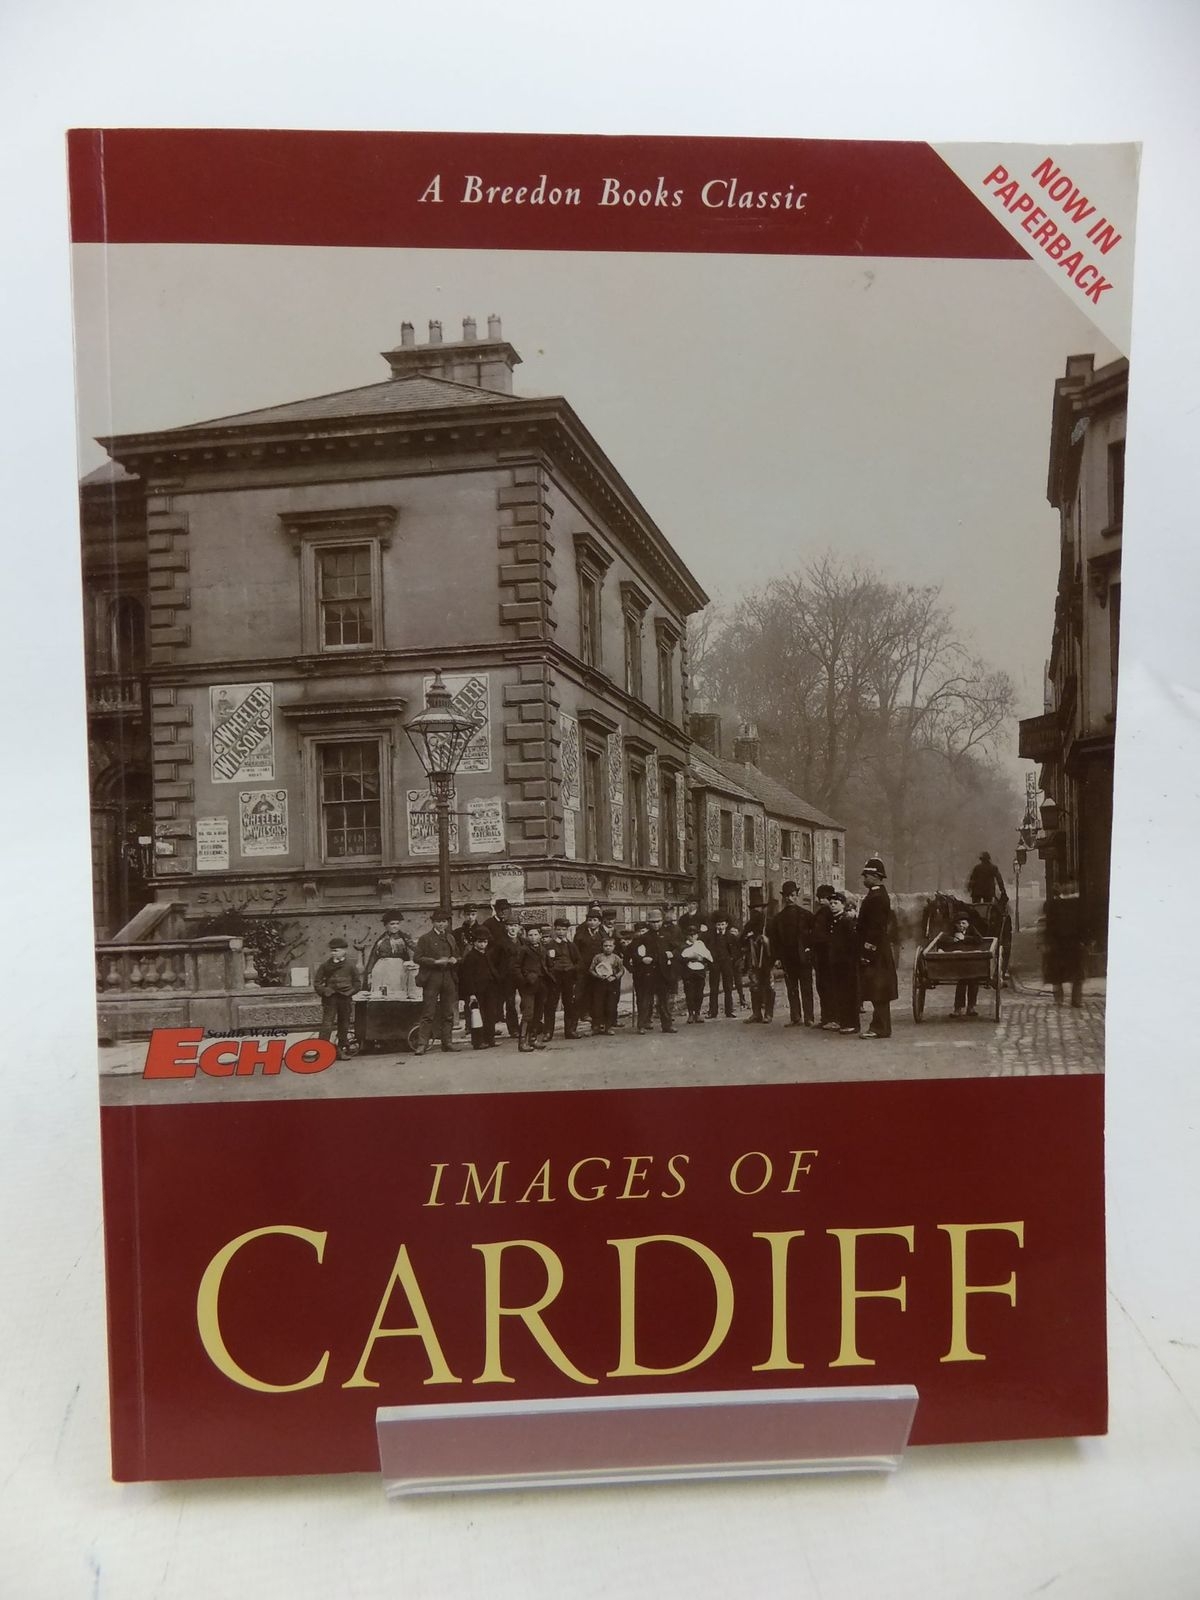 Photo of IMAGES OF CARDIFF published by Breedon Books Publishing Co. (STOCK CODE: 2113570)  for sale by Stella & Rose's Books